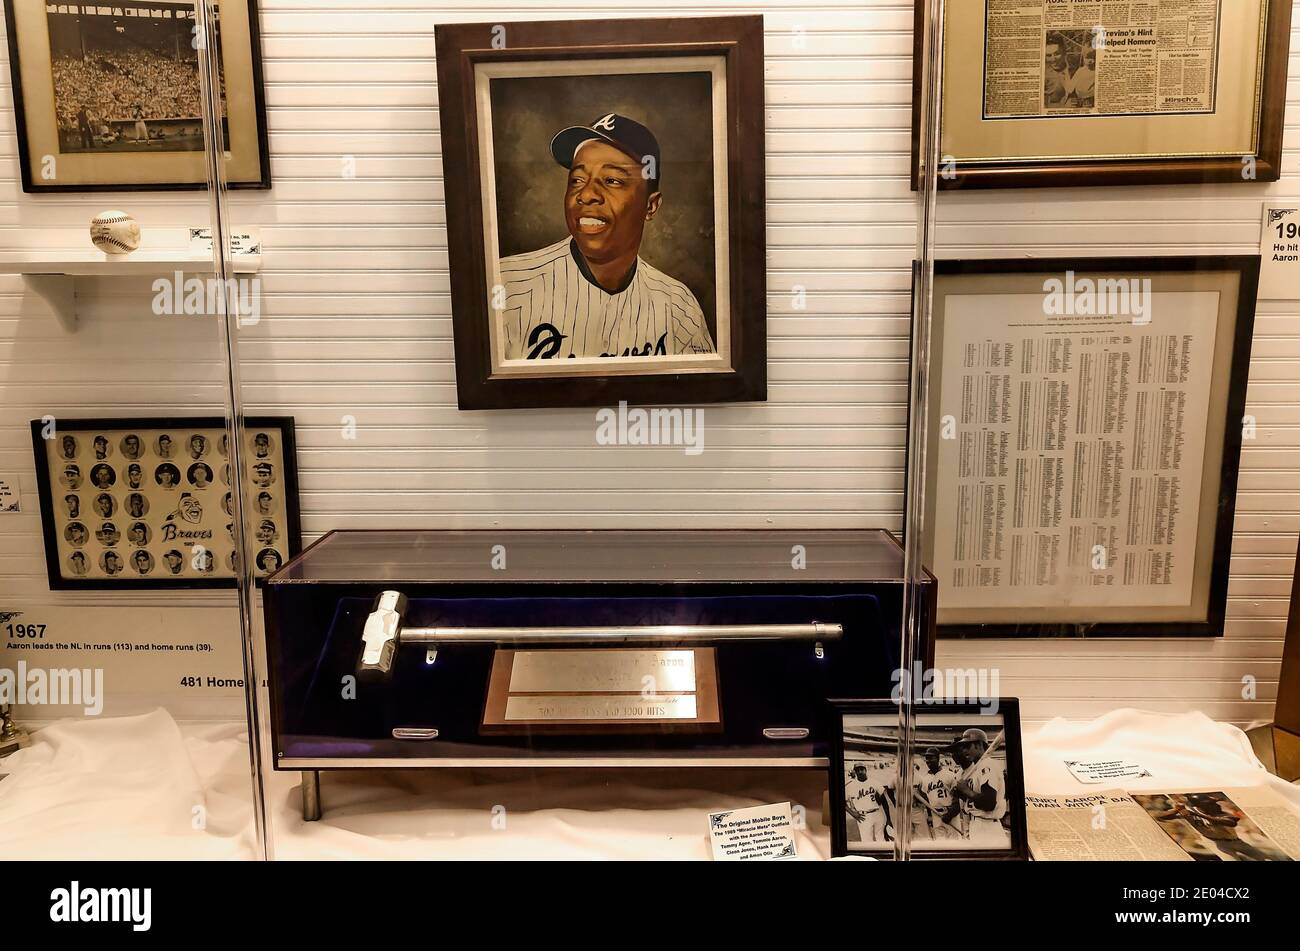 The Hank Aaron Childhood Home and Museum displays memorabilia from the baseball player's life, Aug. 23, 2017, in Mobile, Alabama. Stock Photo